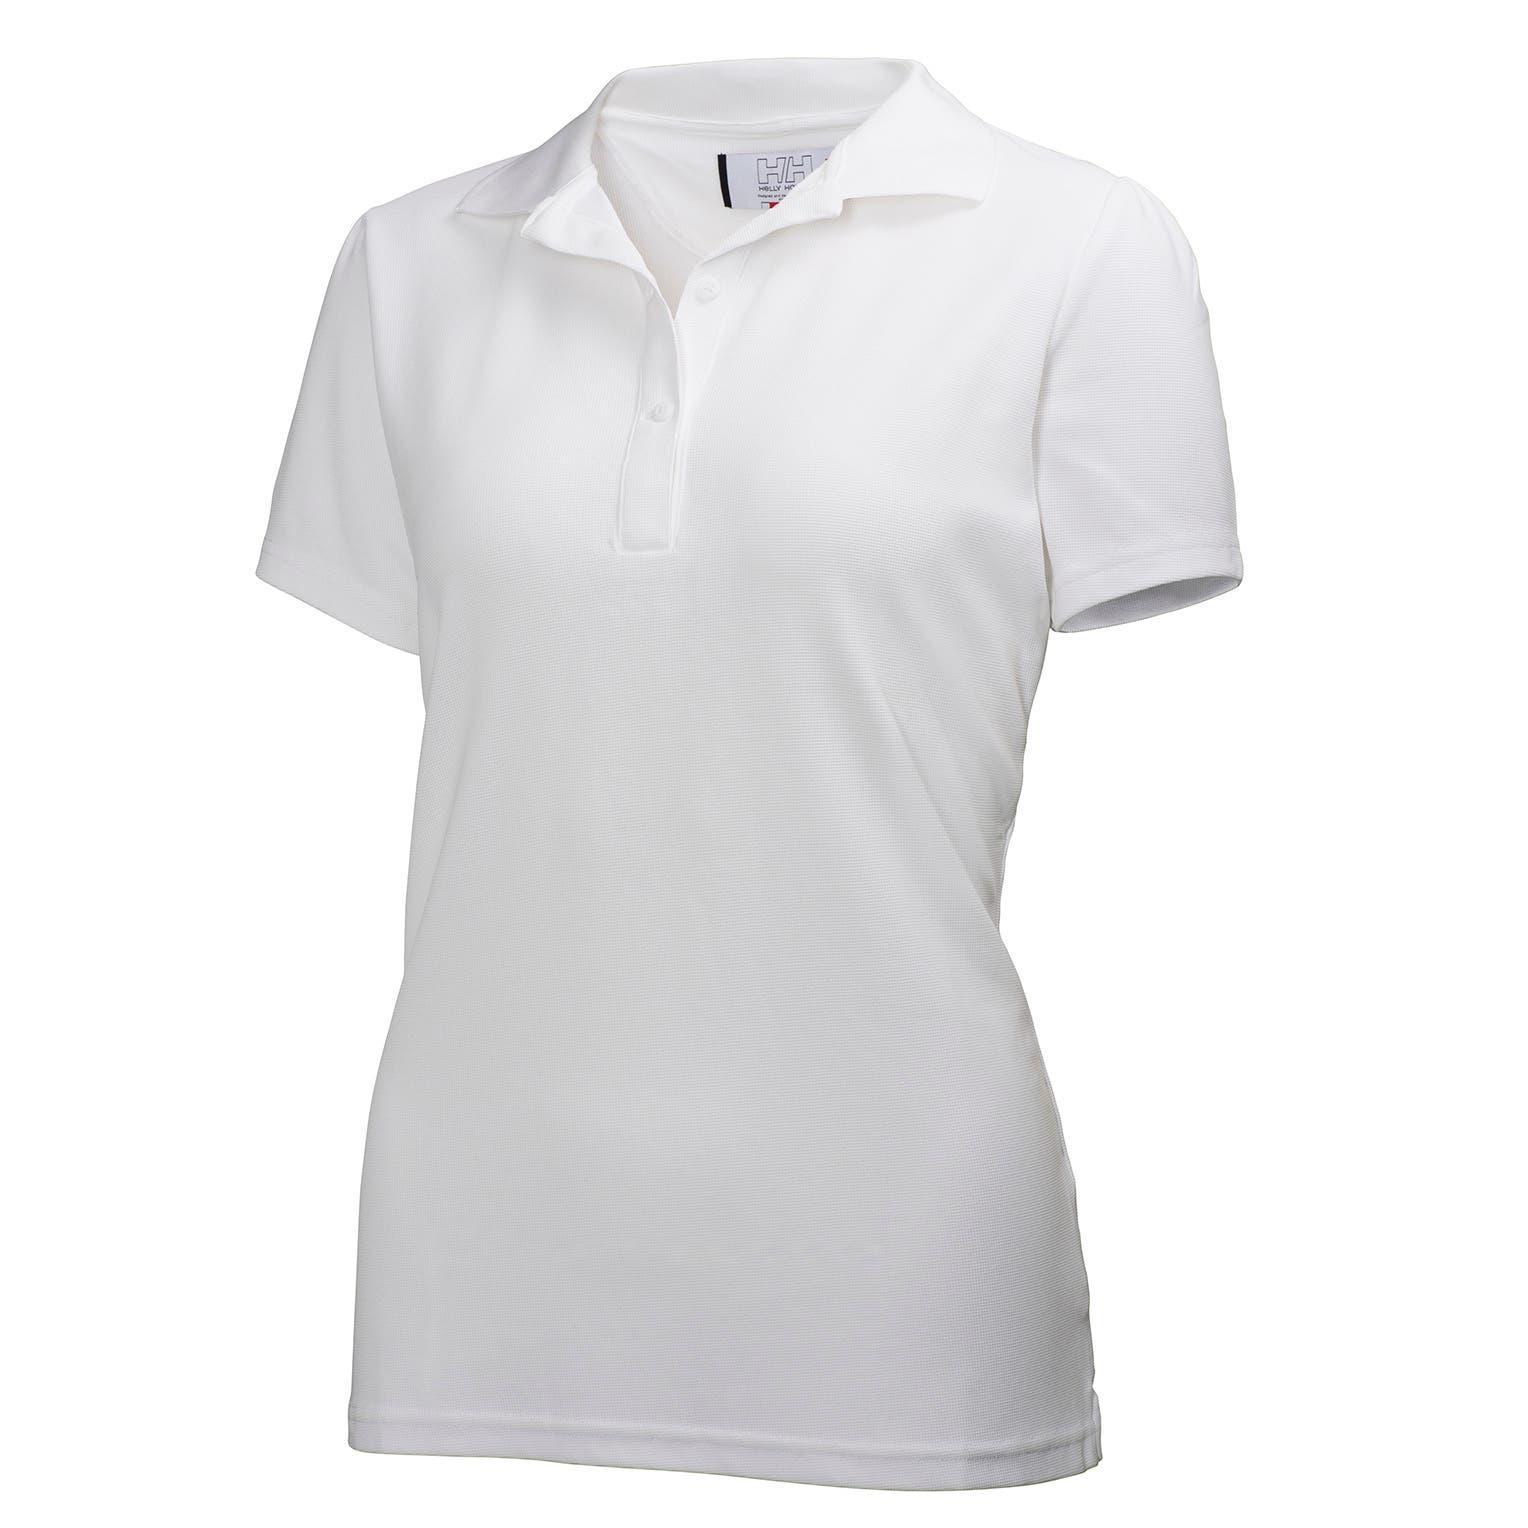 Helly Hansen Women's Tech Crew Polo in White from the front